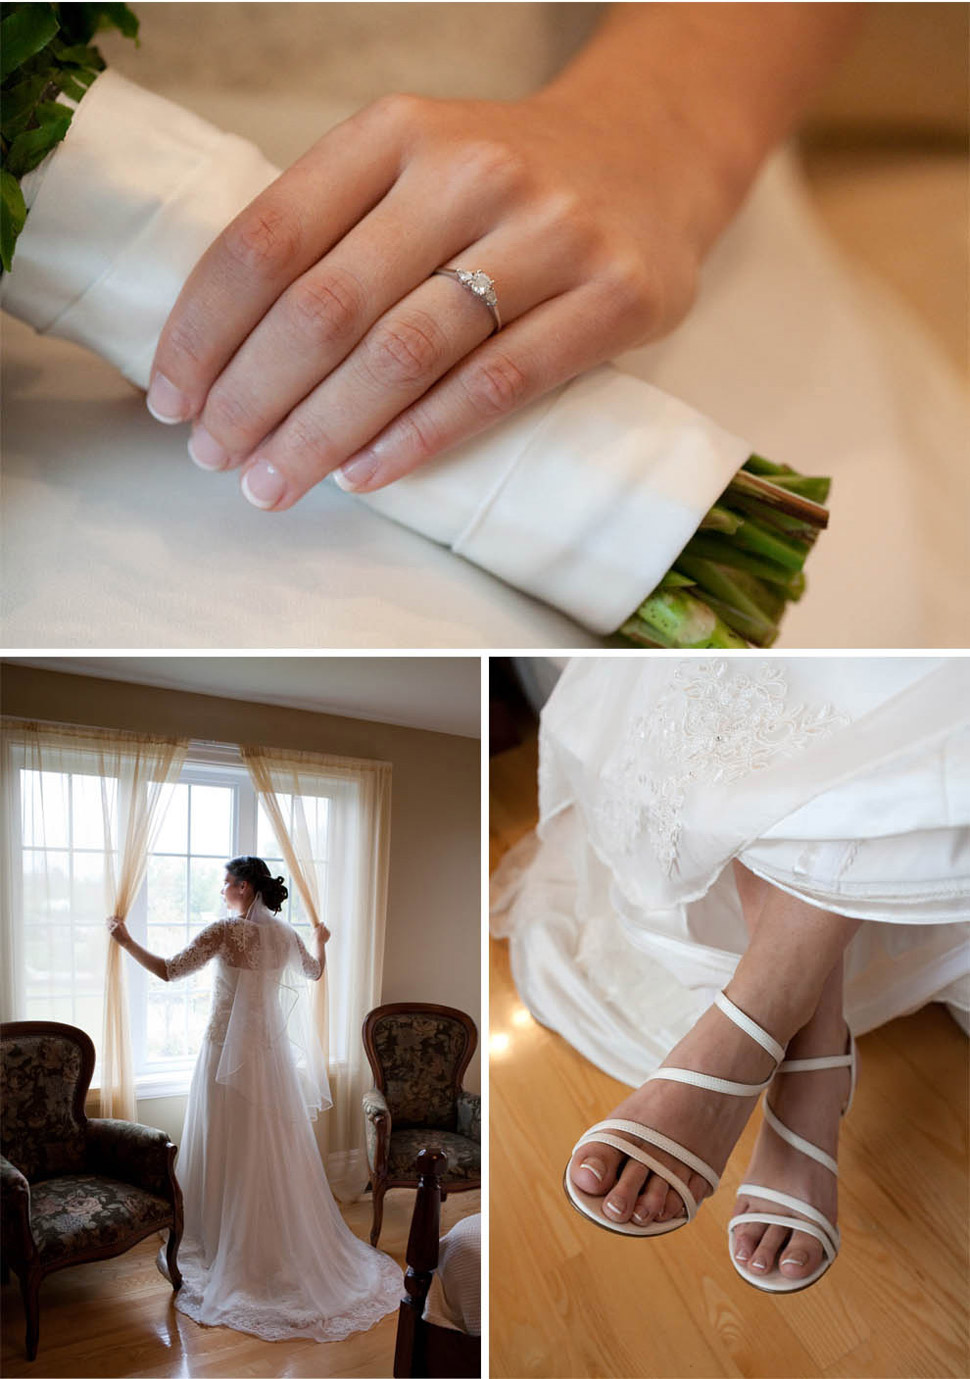 Wedding shoes, dress and ring.